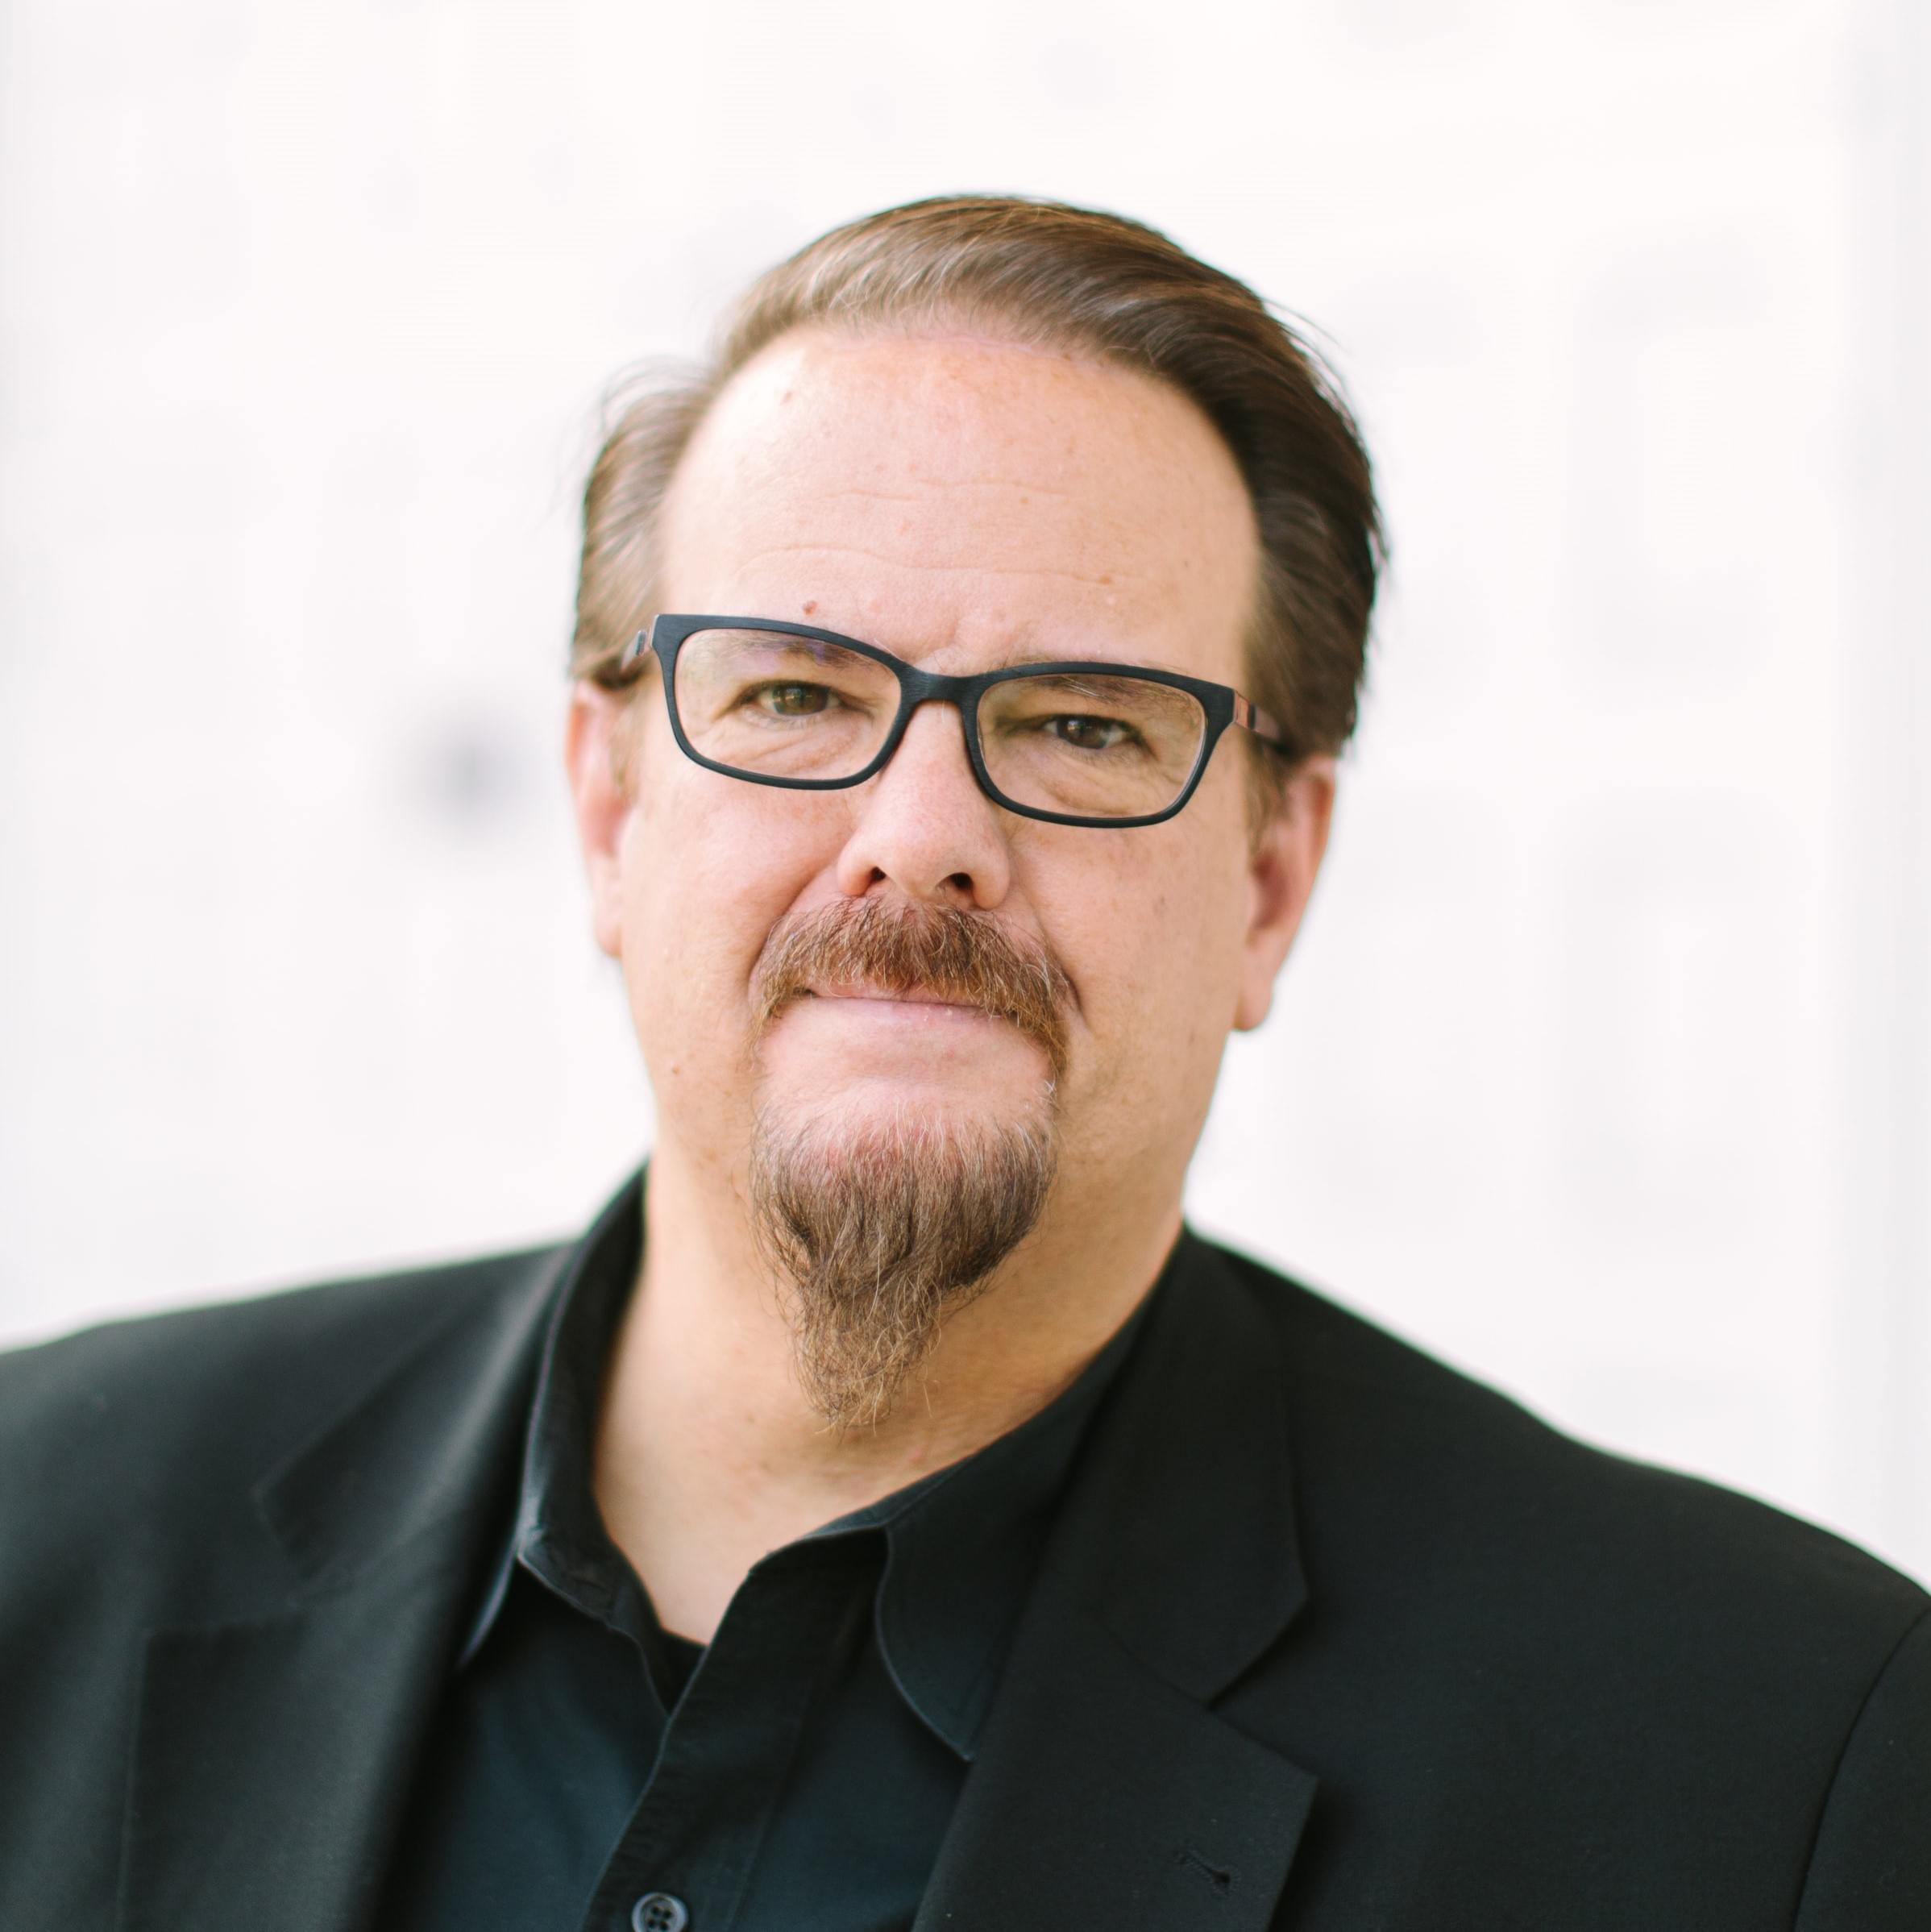 Ed Stetzer, ENGAGE Conference